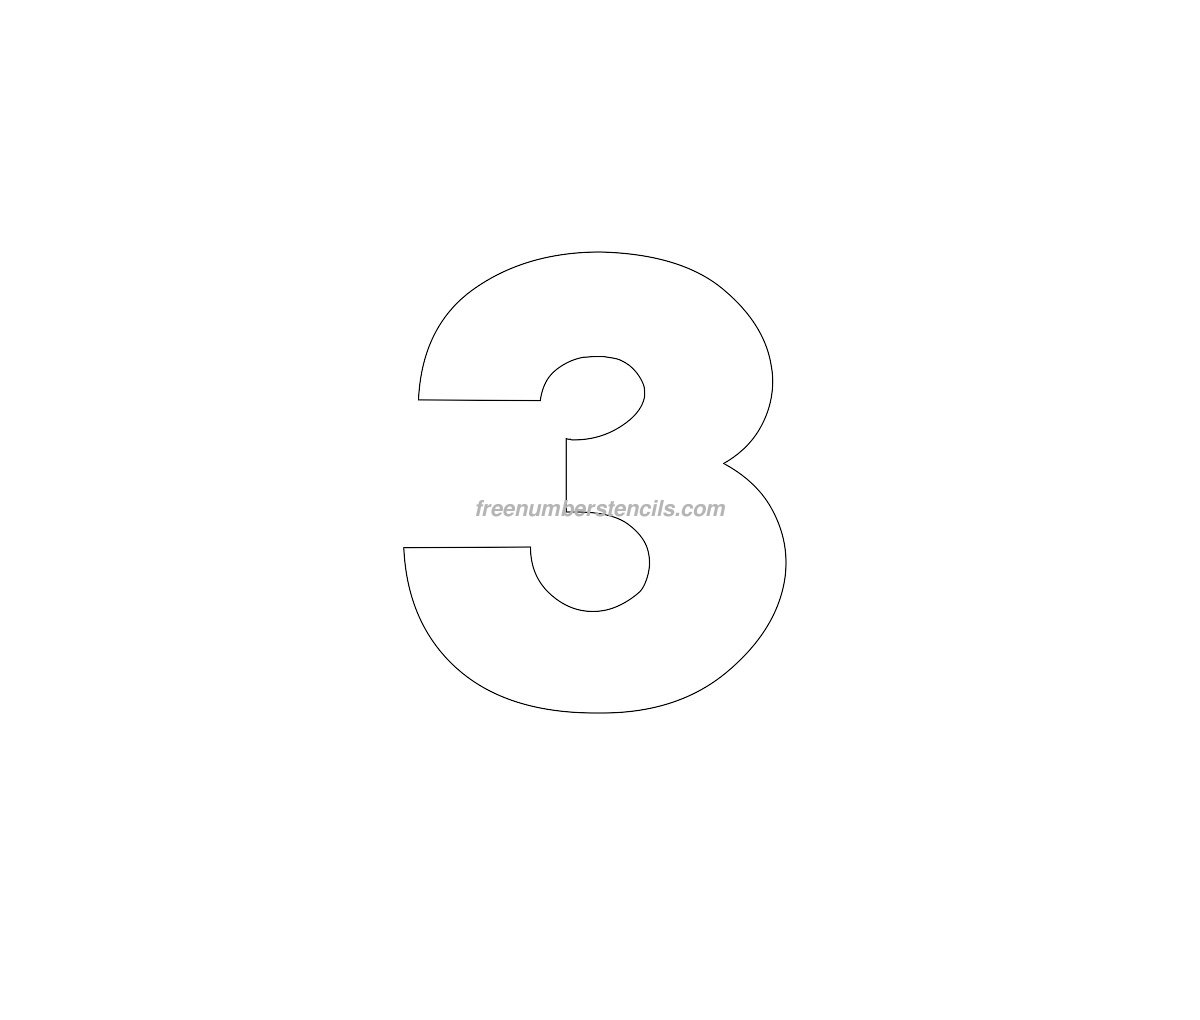 free helvetica 3 number stencil